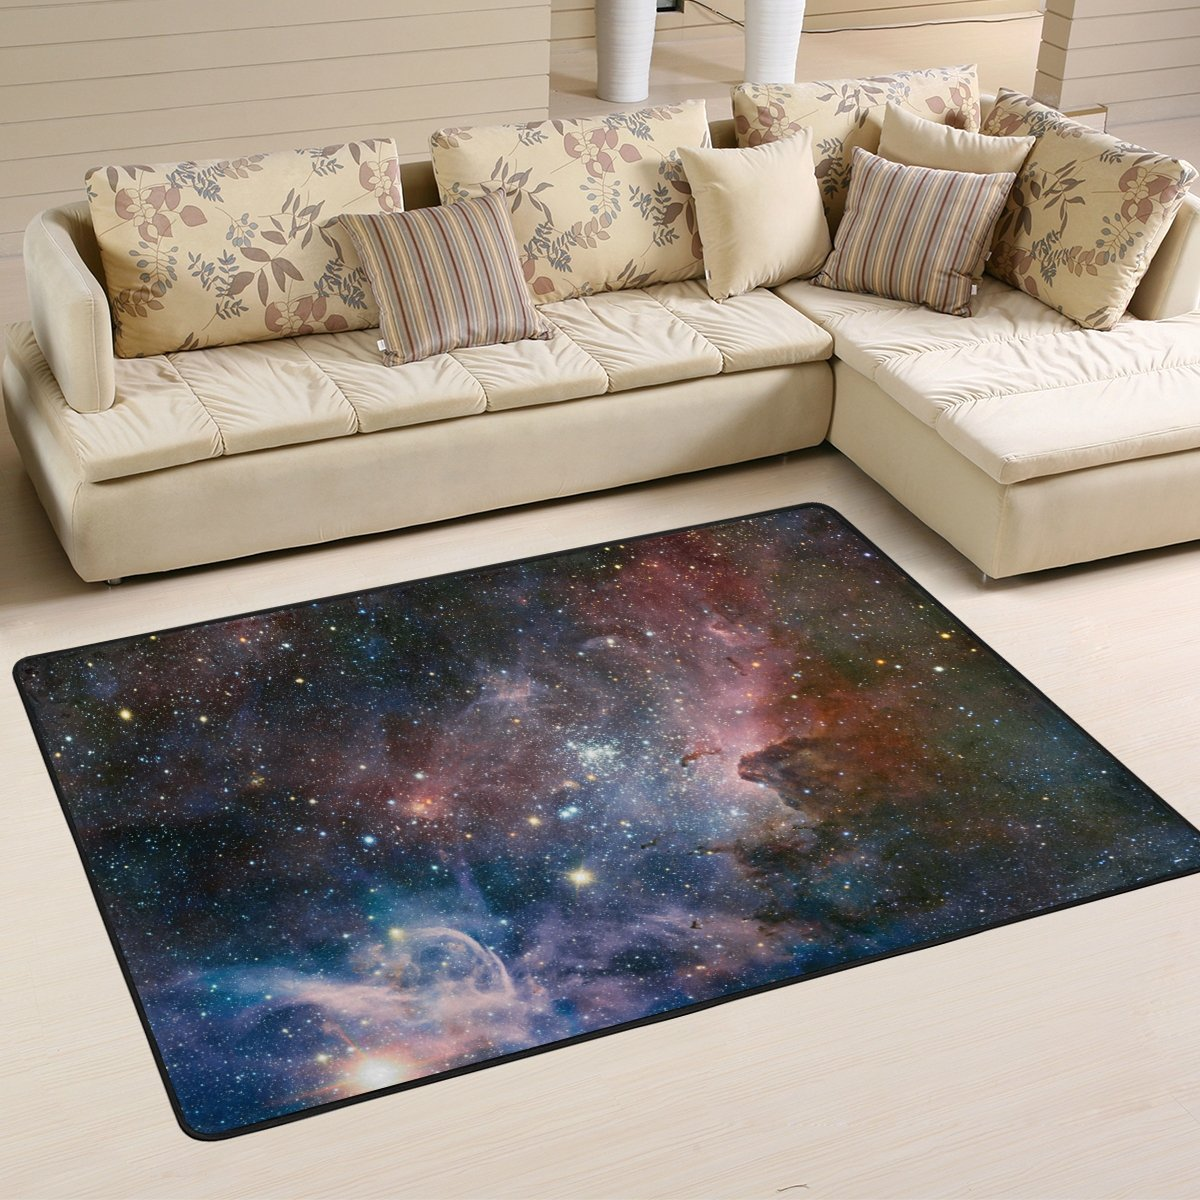 My Little Nest Galaxy Space Cloud Modern Area Rug 4 x 6 For Bedroom Dining Room Living Room Floor Mat Lightweight Carpet, Unique Anti Skid Indoor Outdoor Decor Soft Rug Carpets